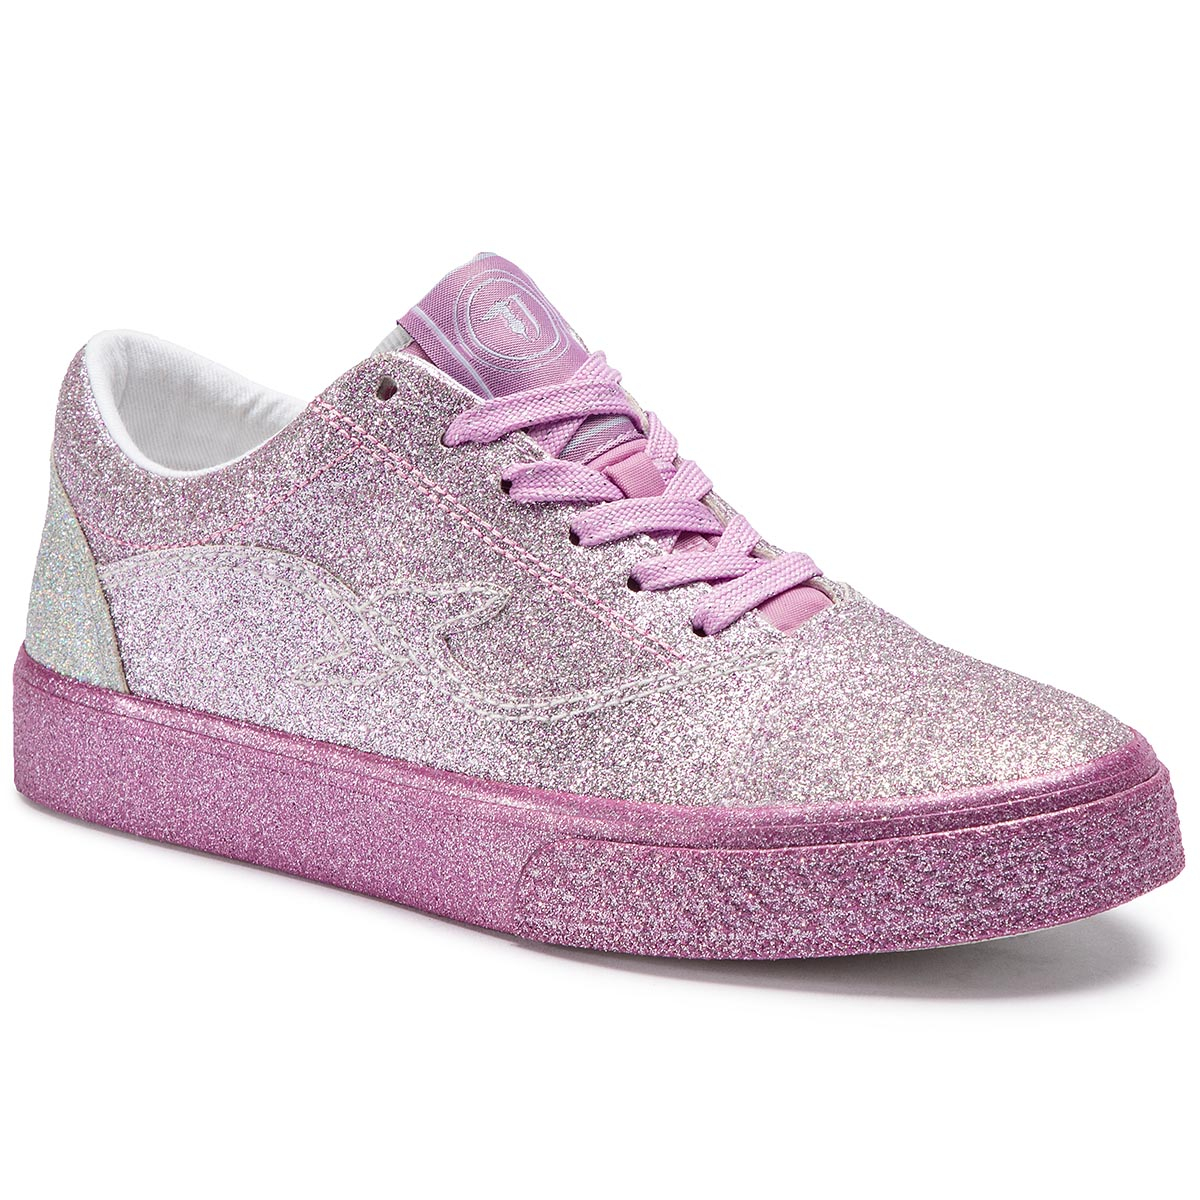 Sneakers TRUSSARDI JEANS - 79A00315 Pink